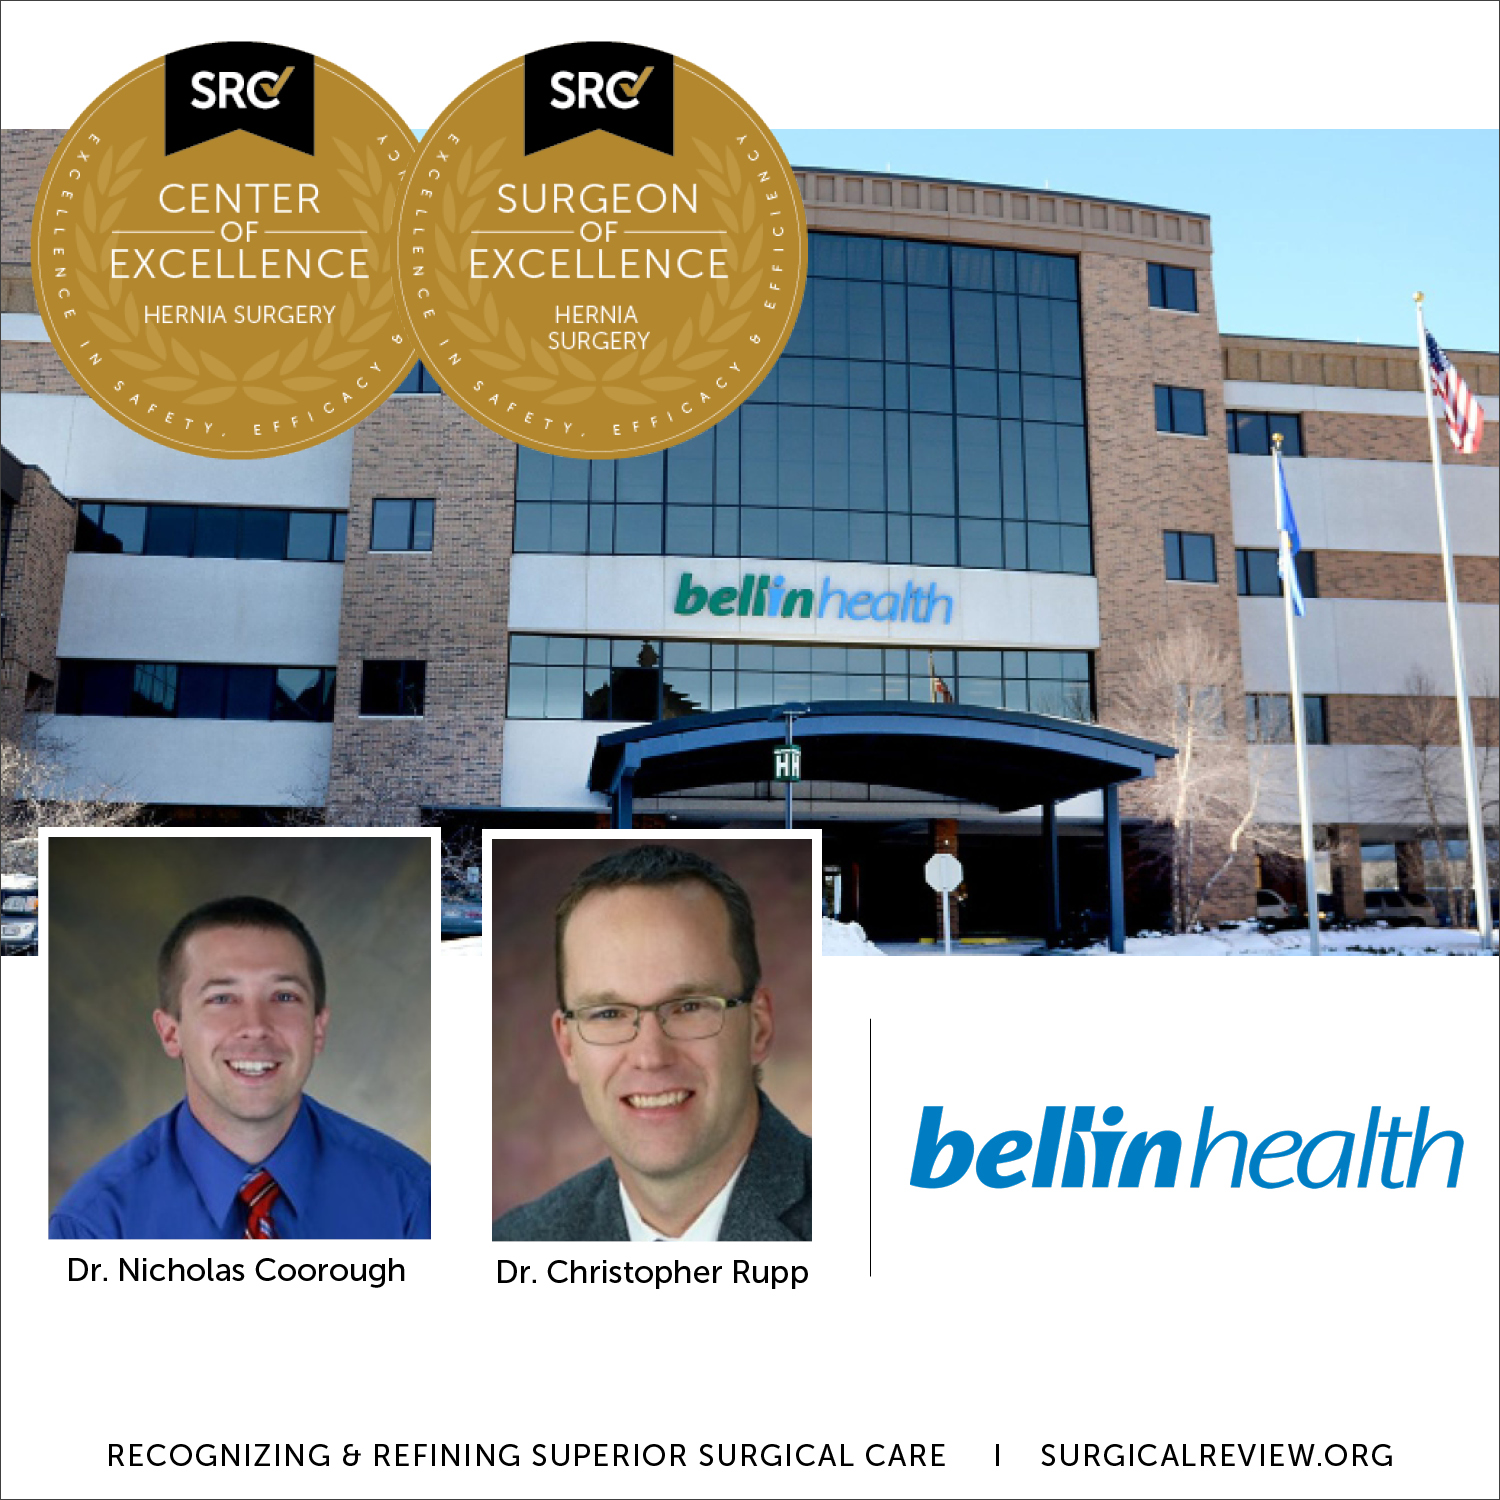 Bellin Health is a Center of Excellence in Hernia Surgery